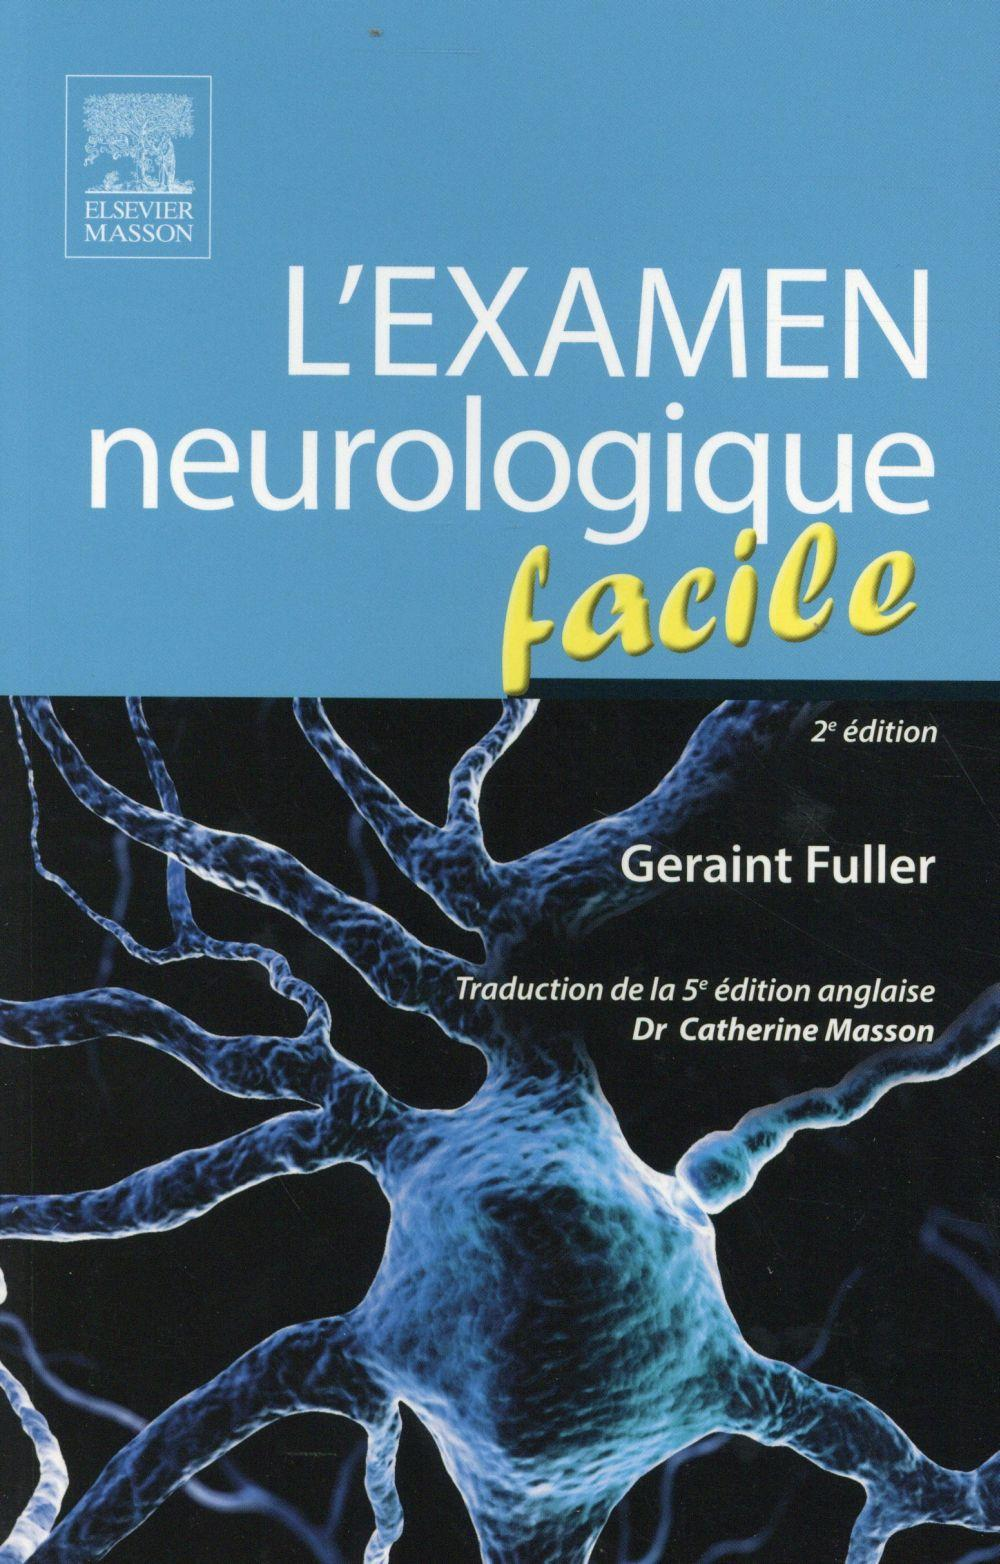 L'examen neurologique facile  - Geraint Fuller  - Catherine Masson